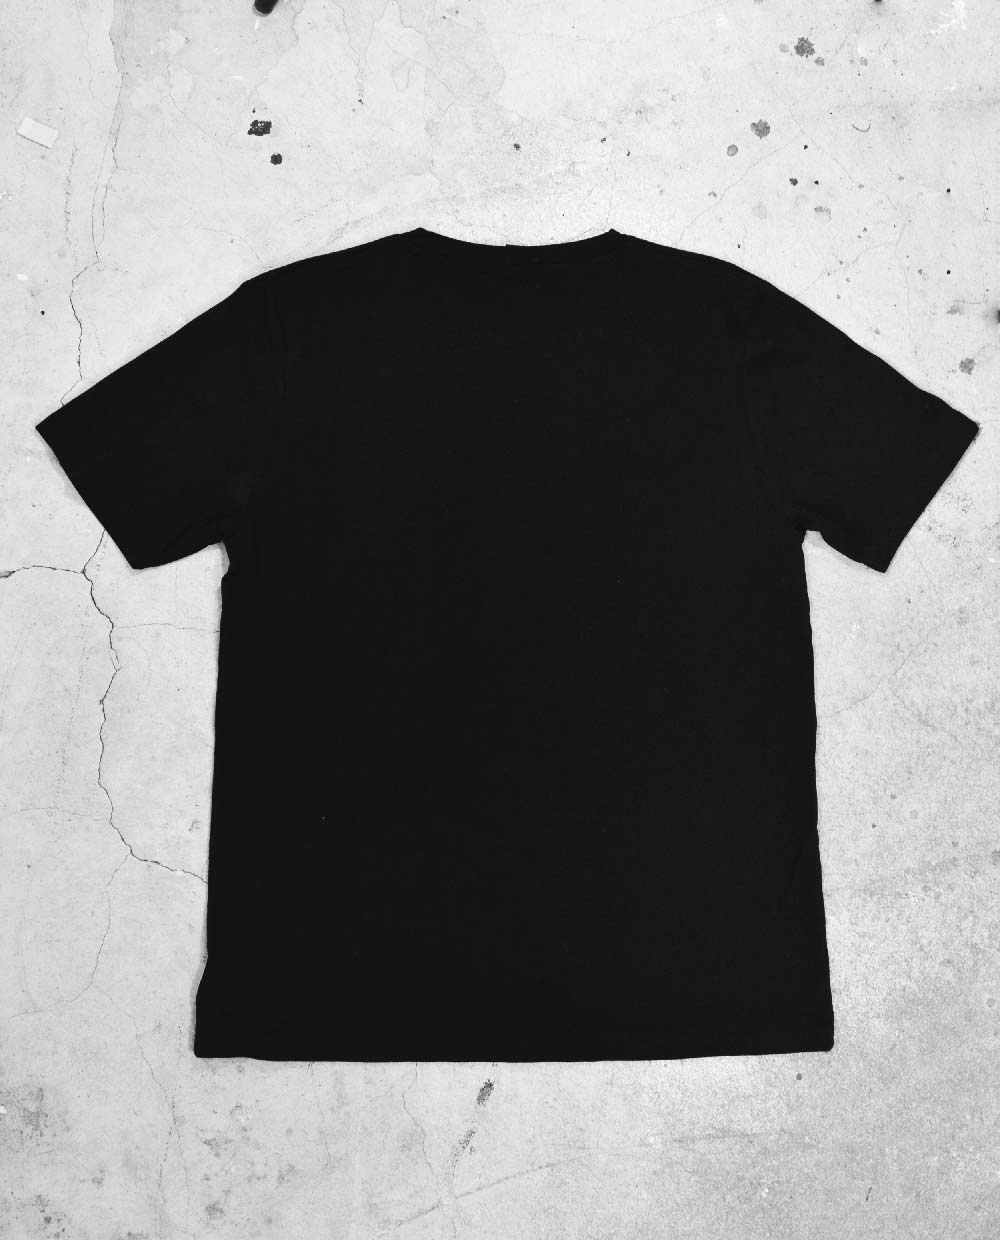 Back of Blank Black Regular T Shirt